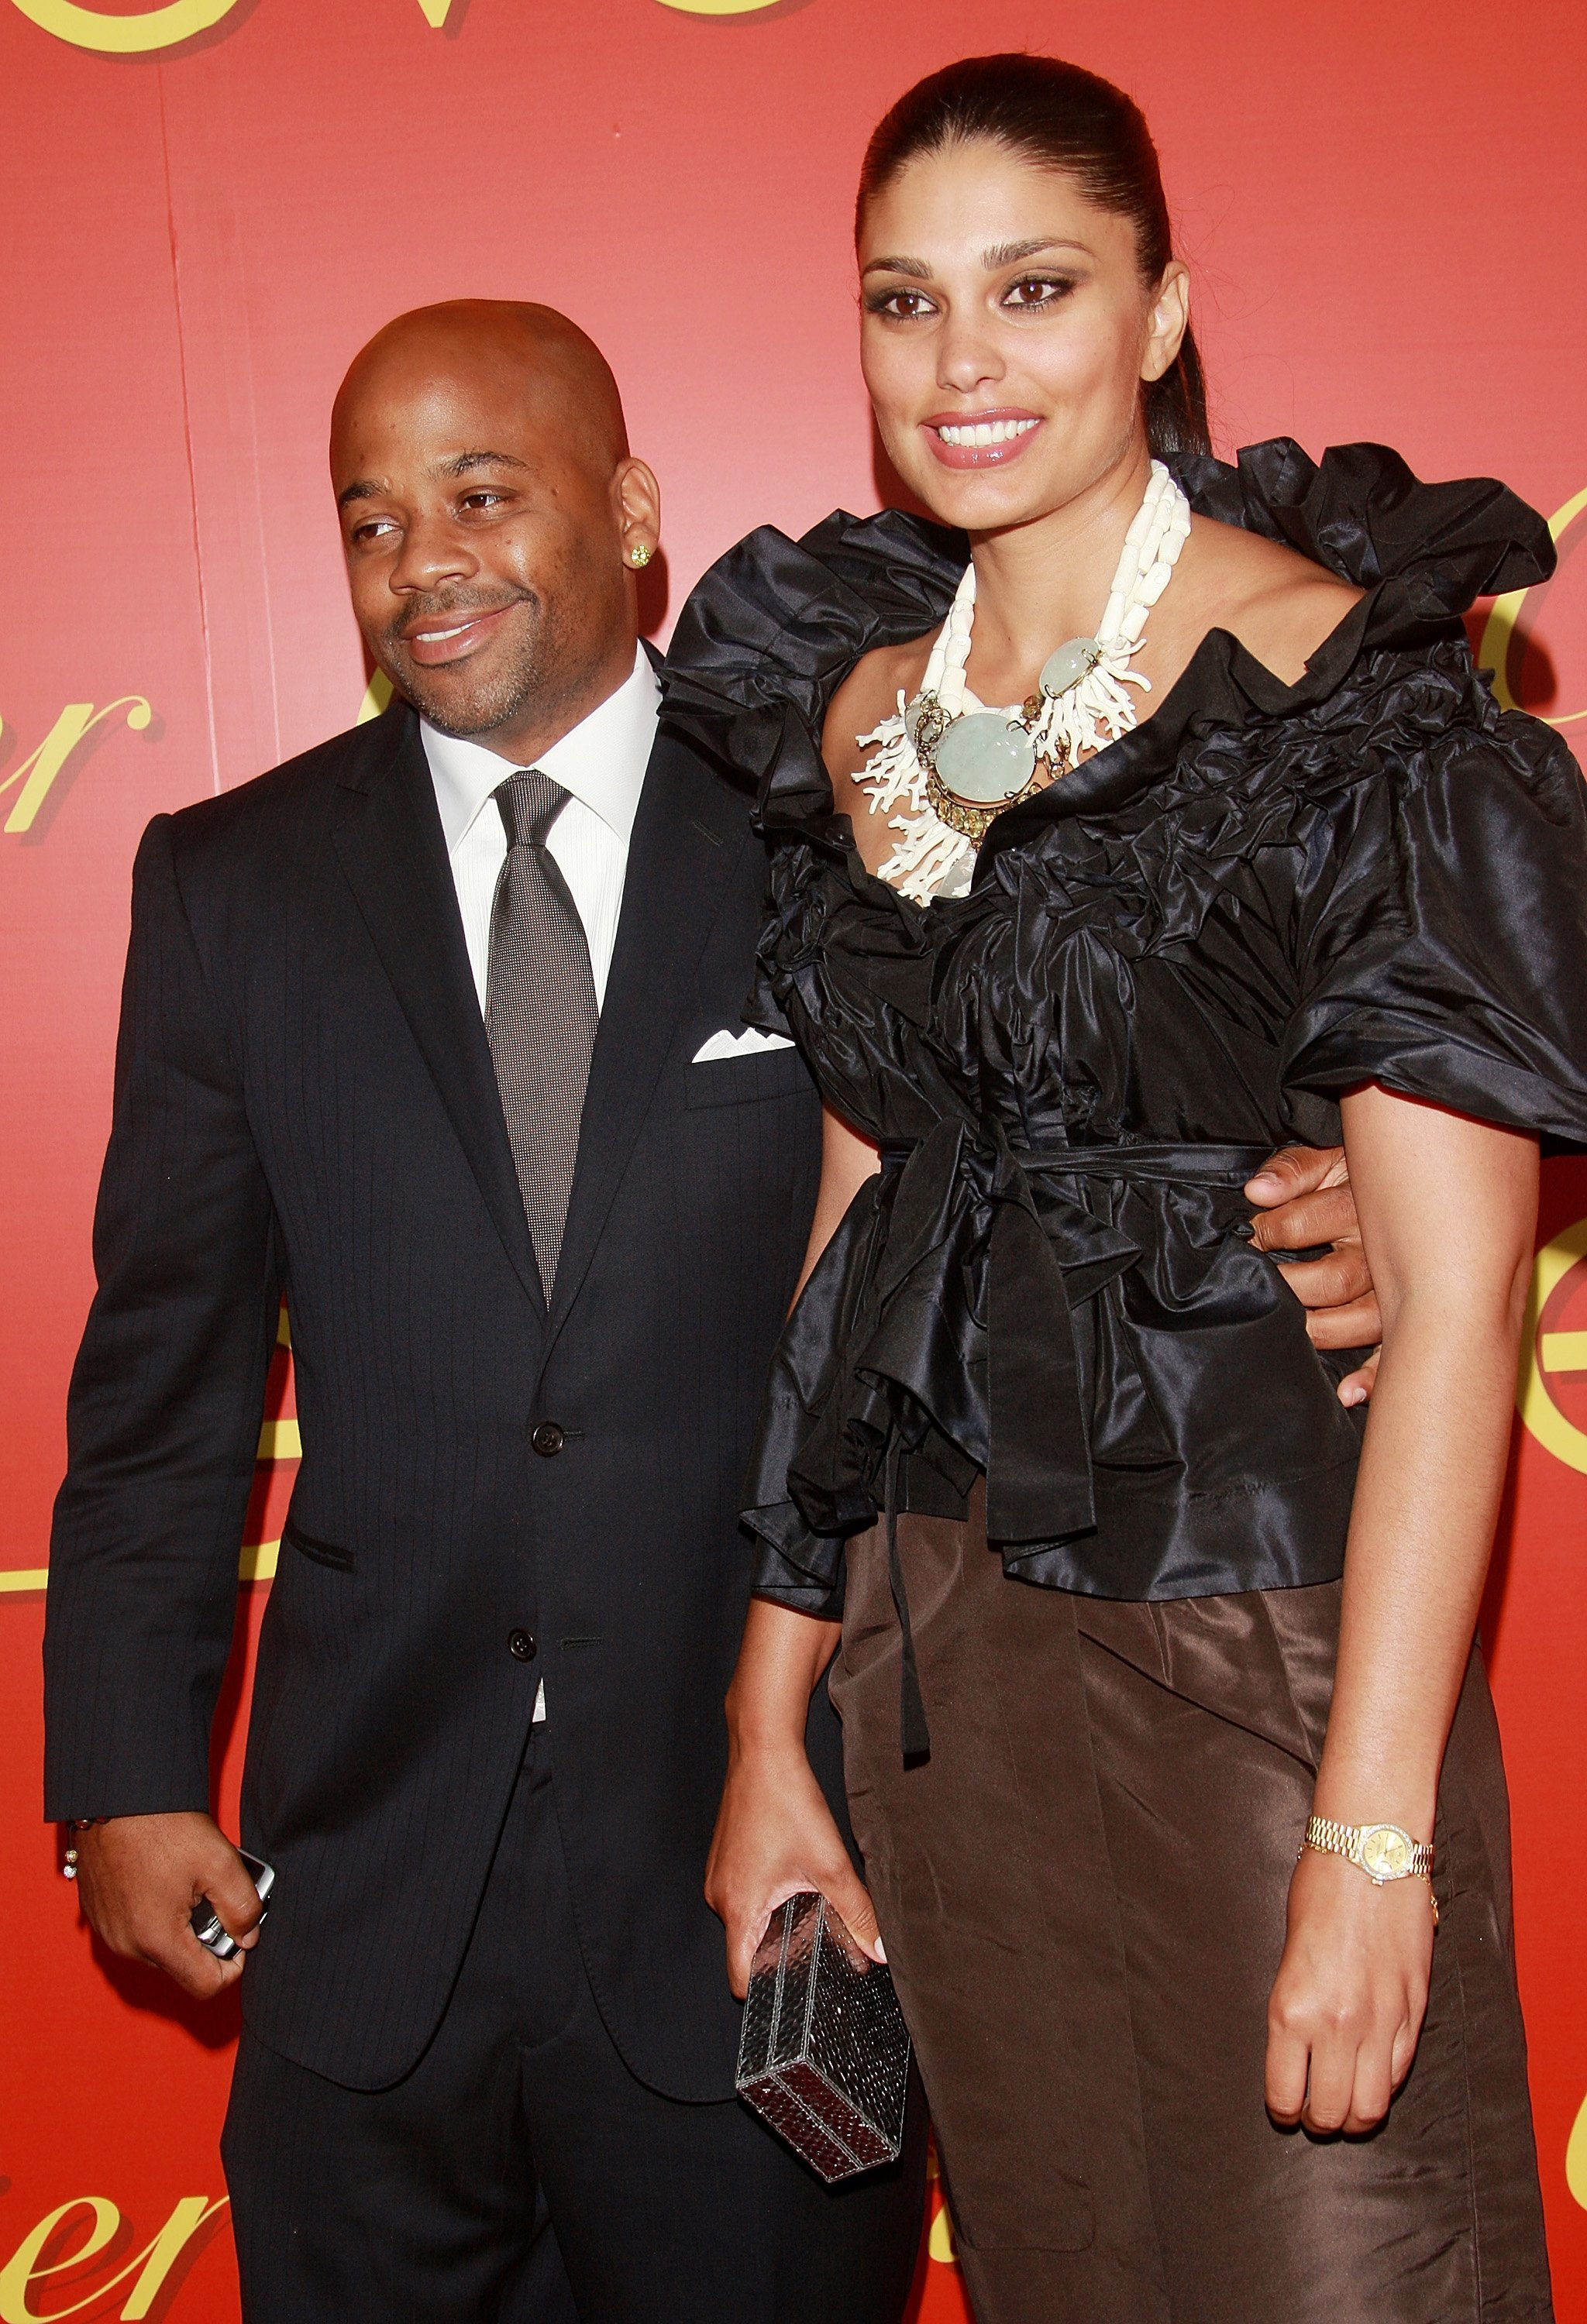 Damon Dash and Rachel Roy during their marriage in 2007 and attending a cocktail party to celebrate The Cartier Charity Love Bracelet at the Cartier Mansion in New York. | Photo: Getty Images